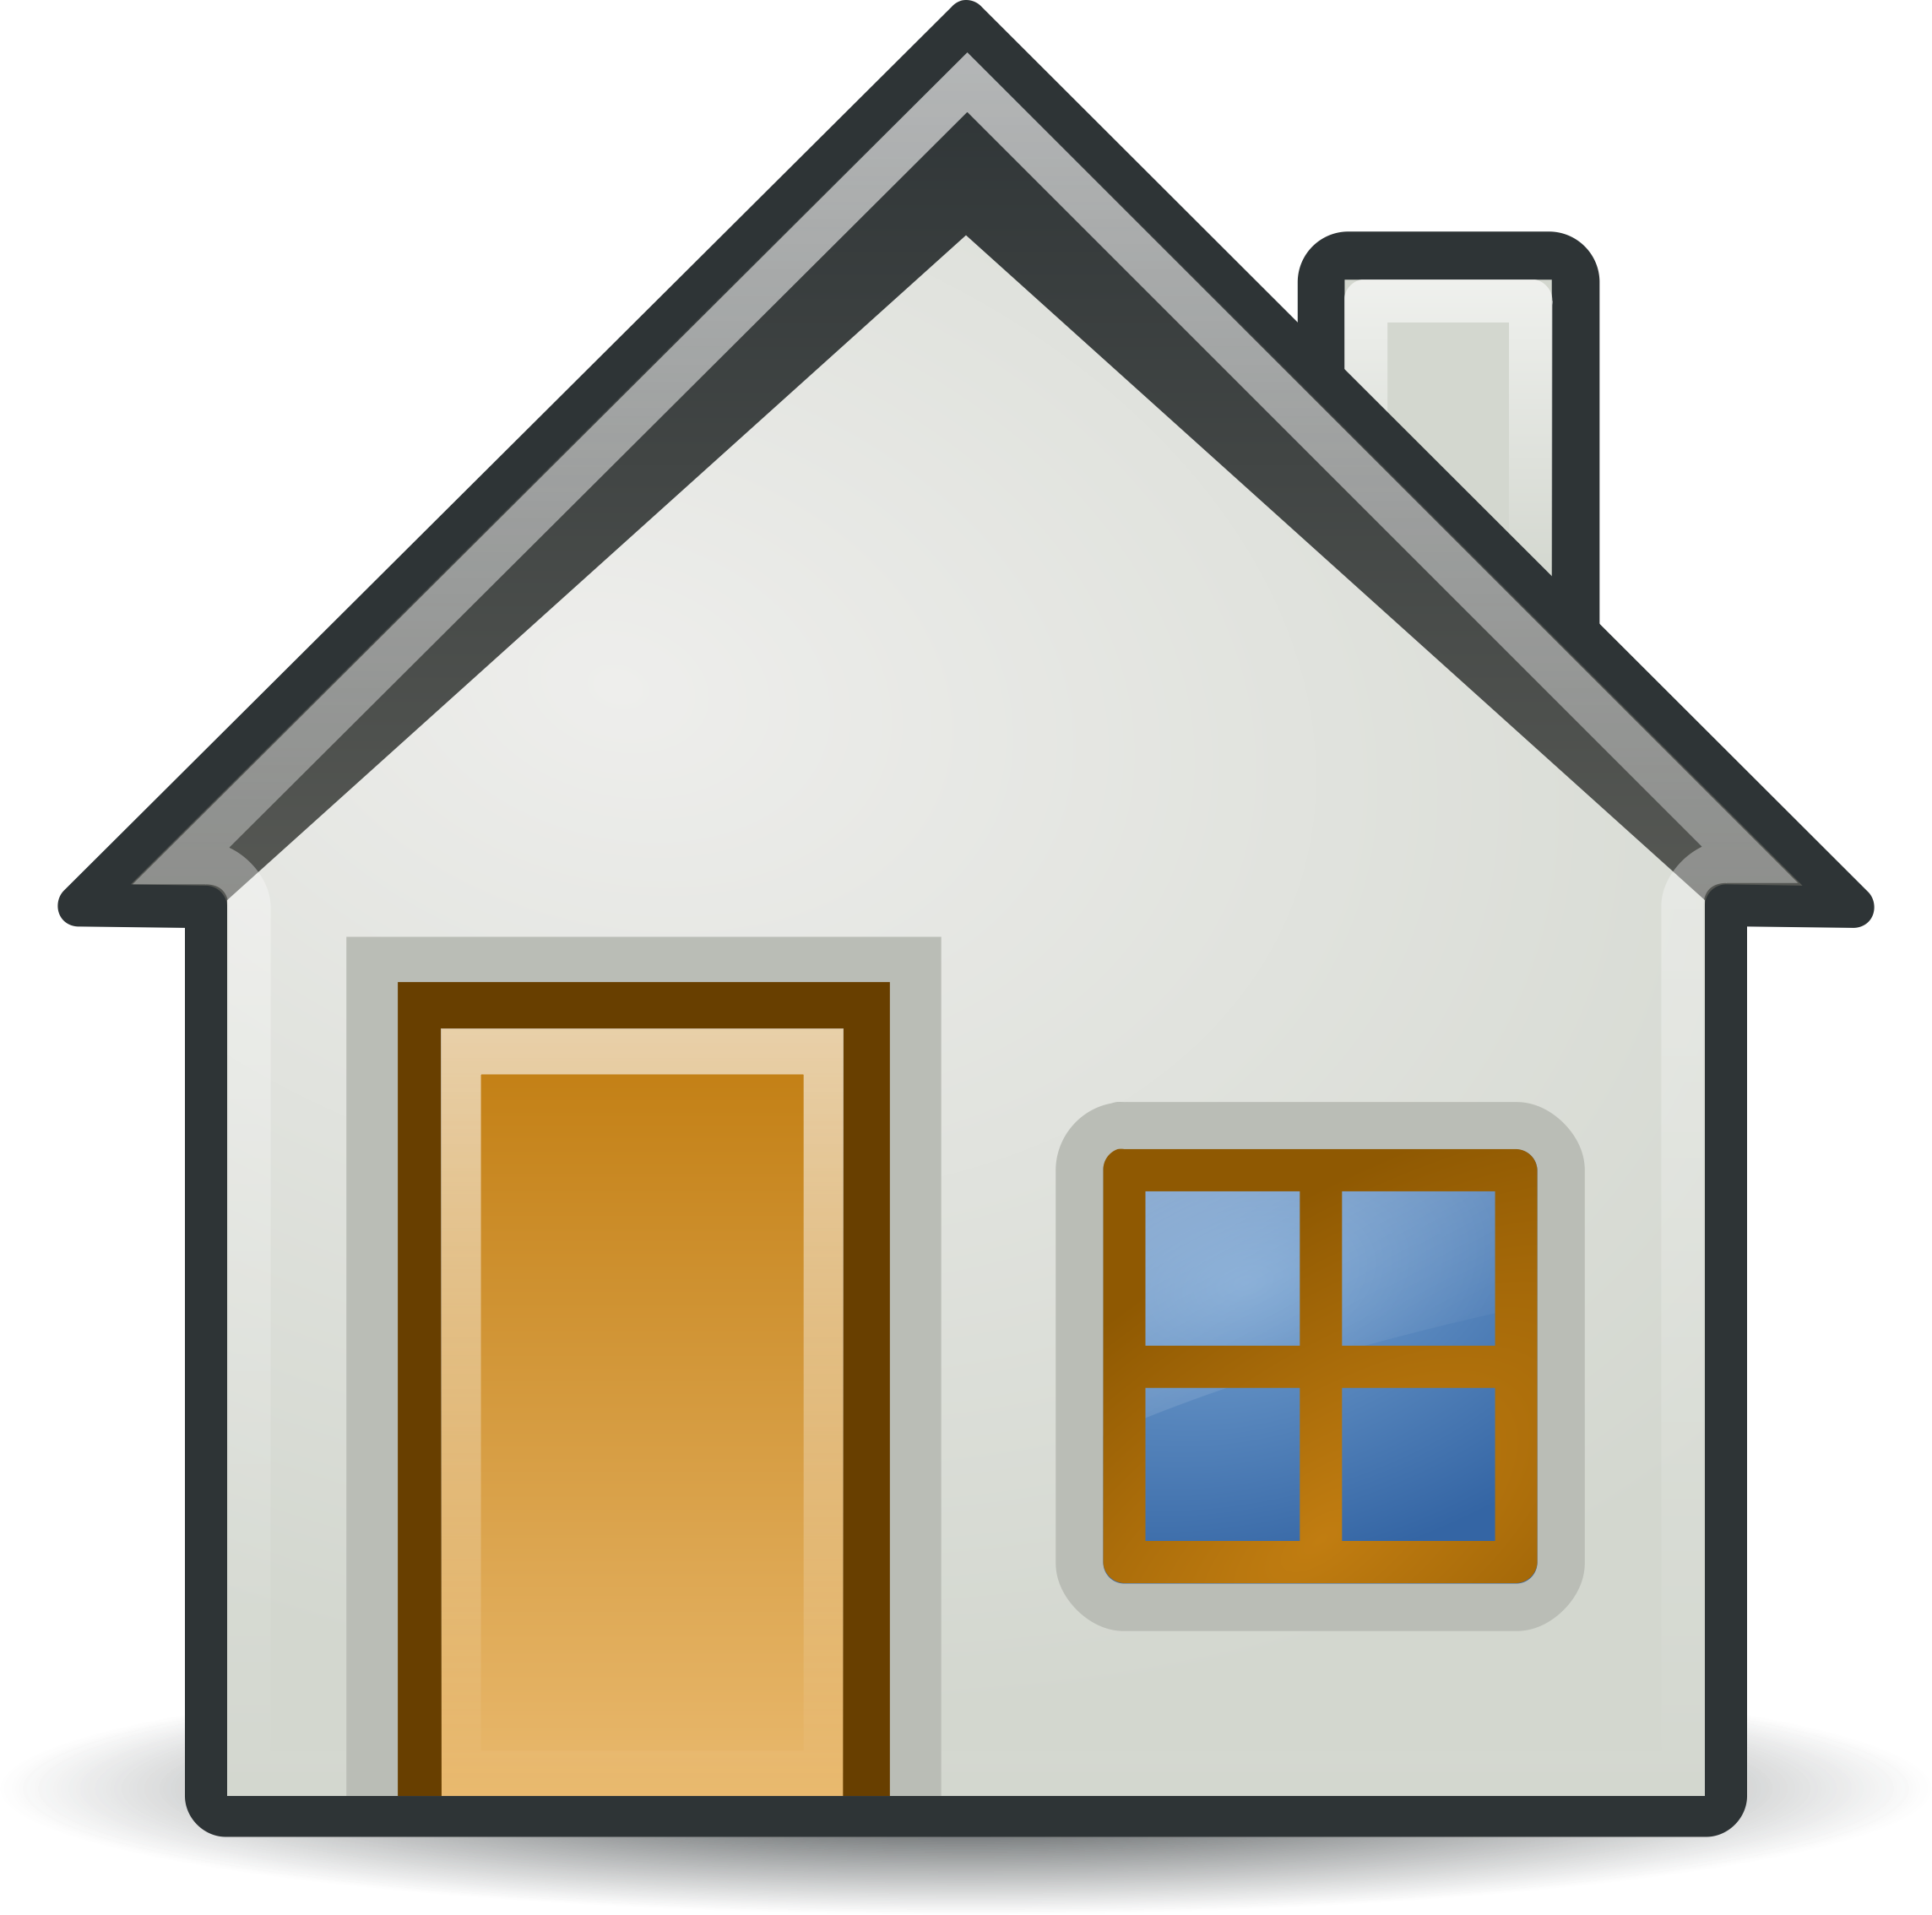 Home Icons Clipart